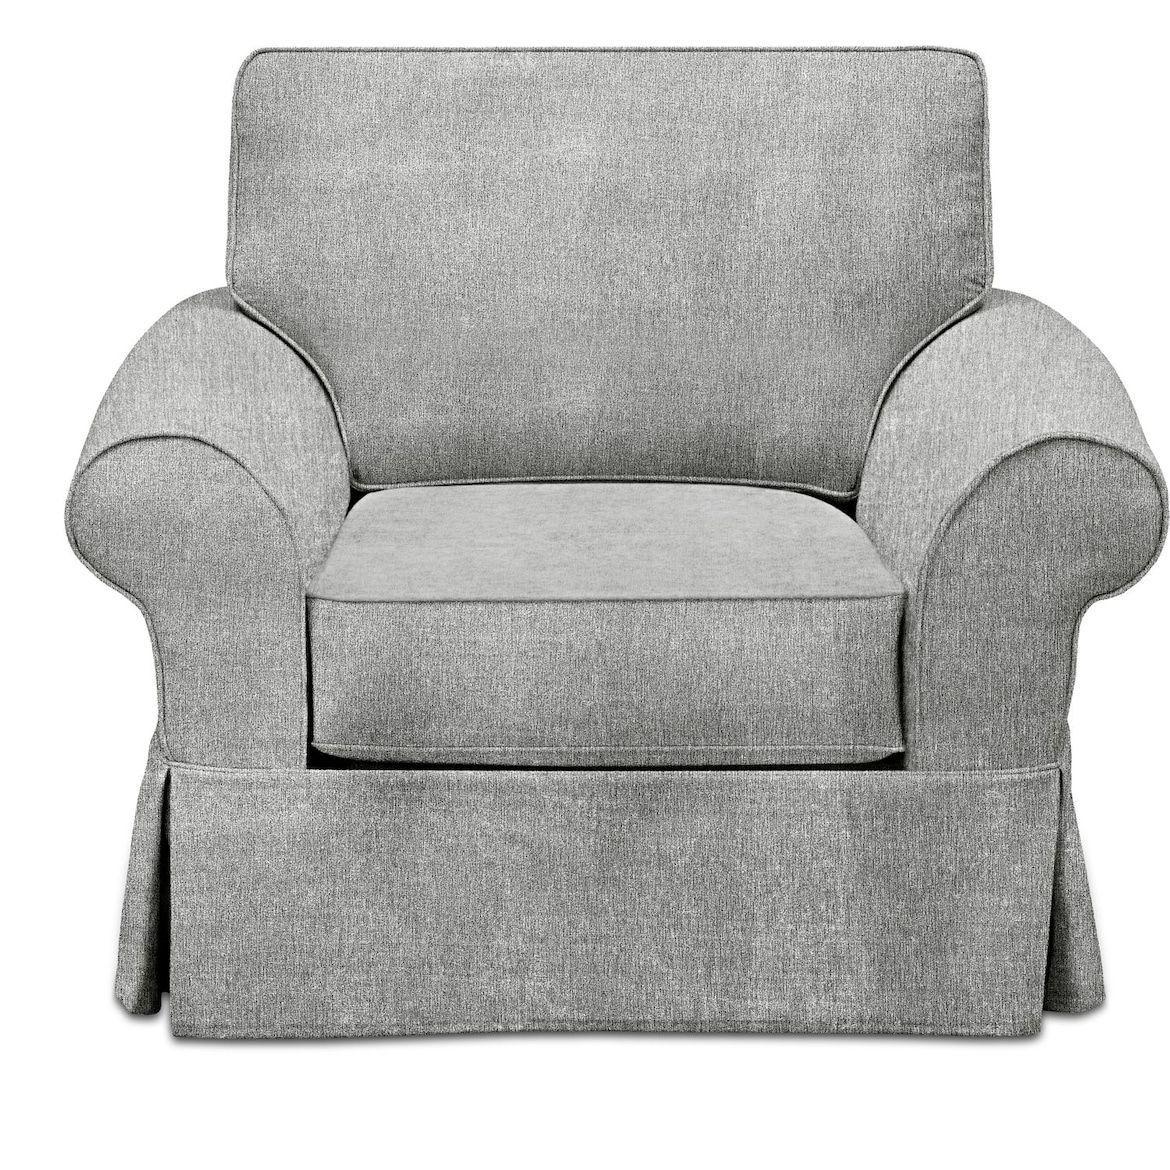 Sawyer Slipcover Chair Slipcovers for chairs, Slipcovers